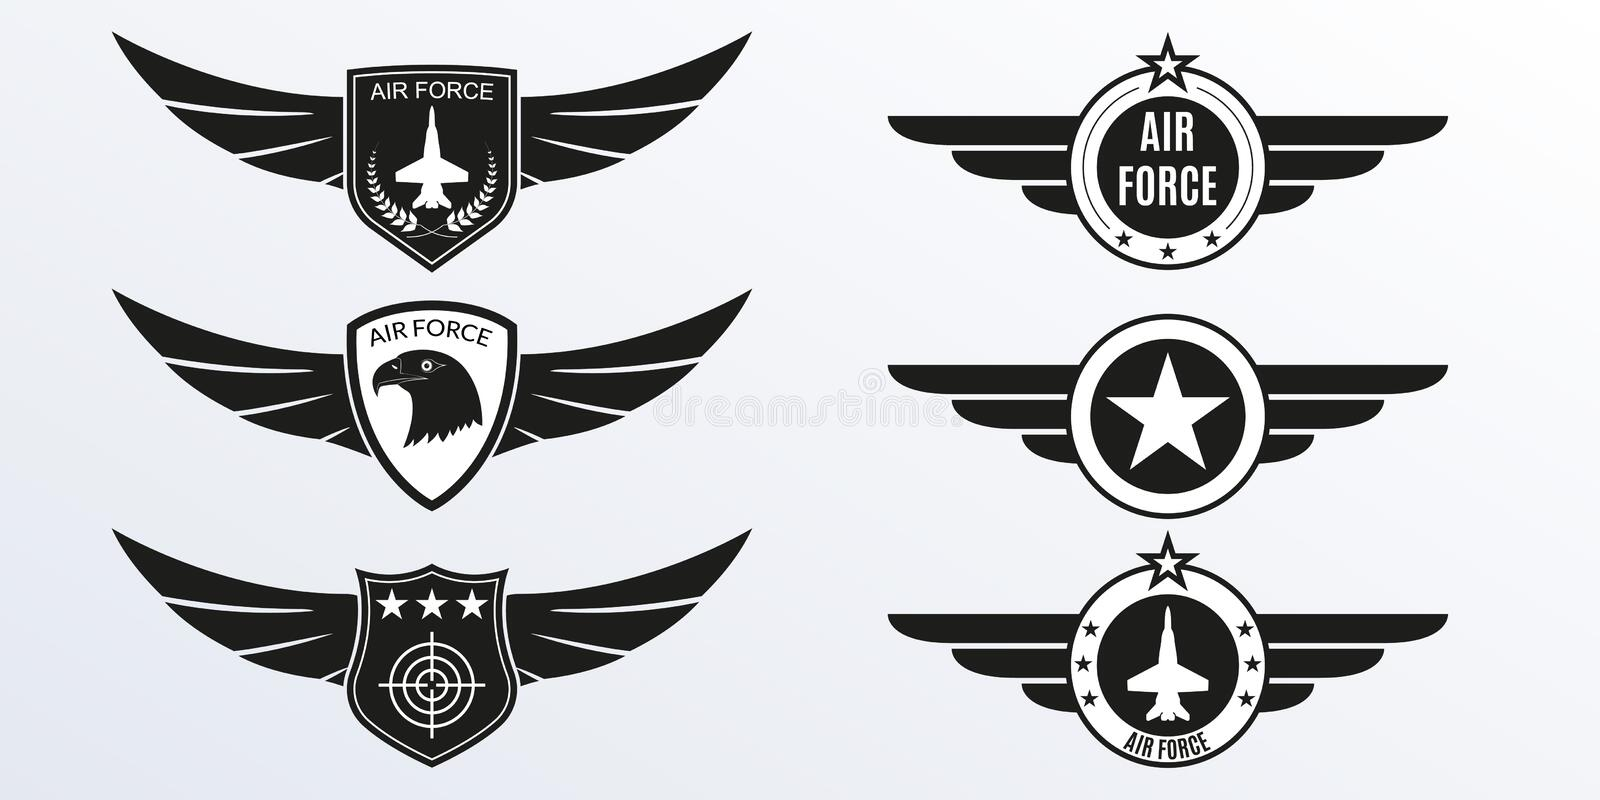 Military Badges Stock Illustrations 1 175 Military Badges Stock Illustrations Vectors Clipart Dreamstime